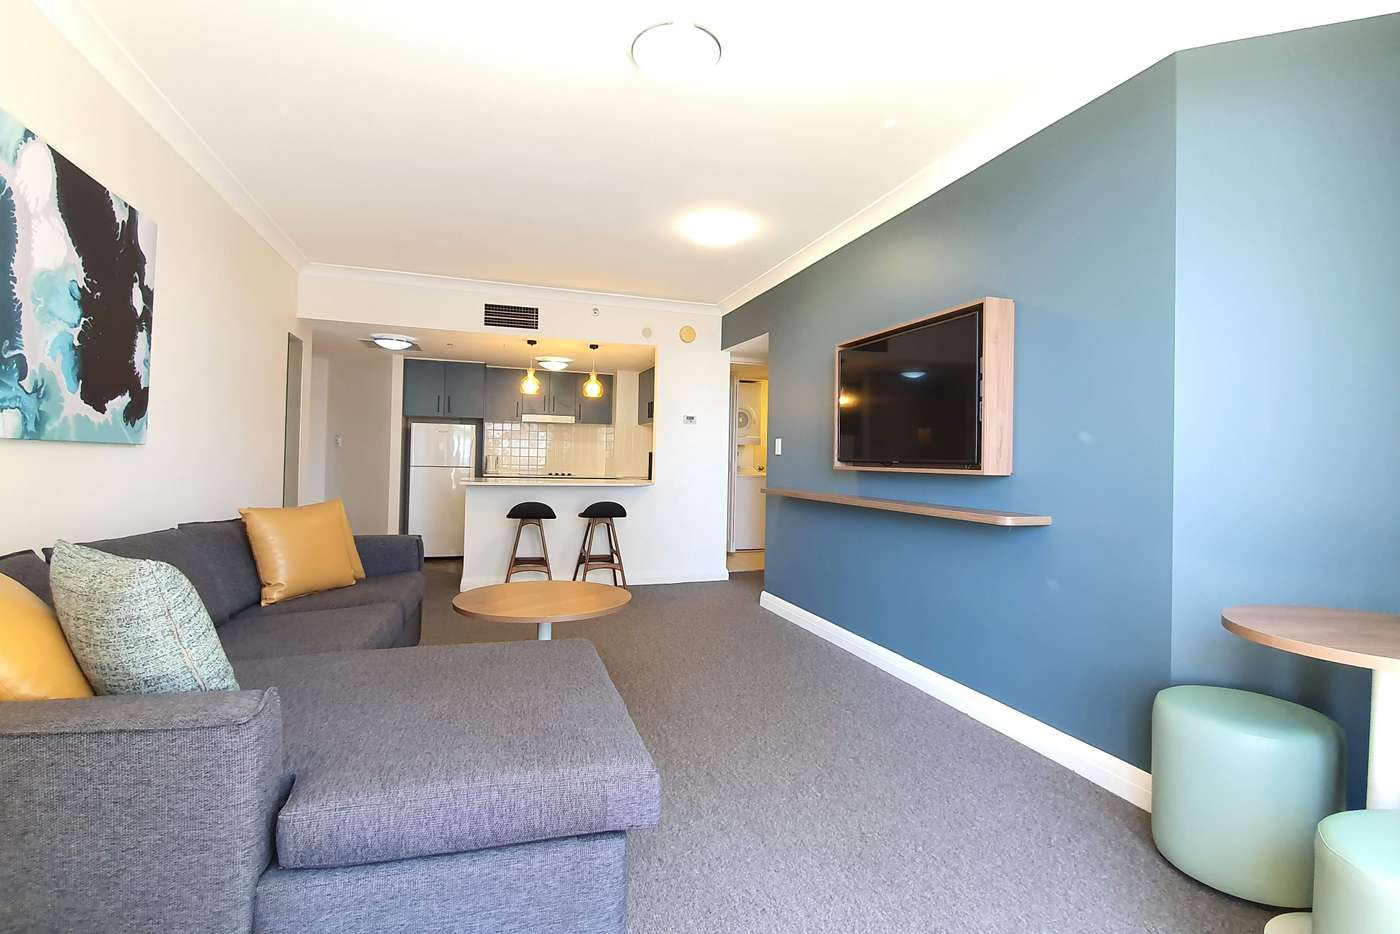 Main view of Homely apartment listing, 503/10 Brown Street, Chatswood NSW 2067